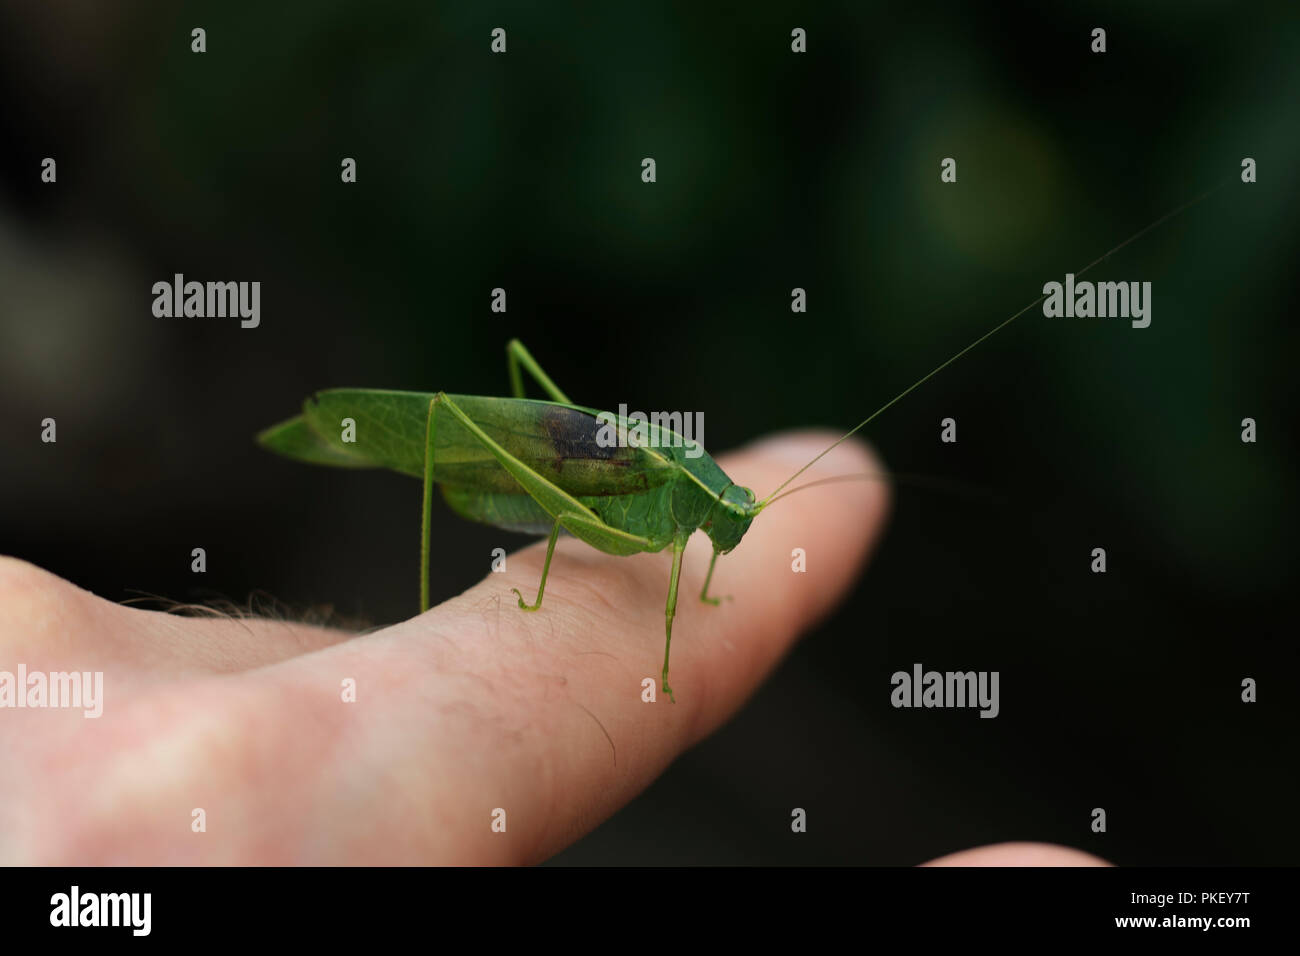 Grasshopper close up sitting on a human finger. Green grasshopper. - Stock Image